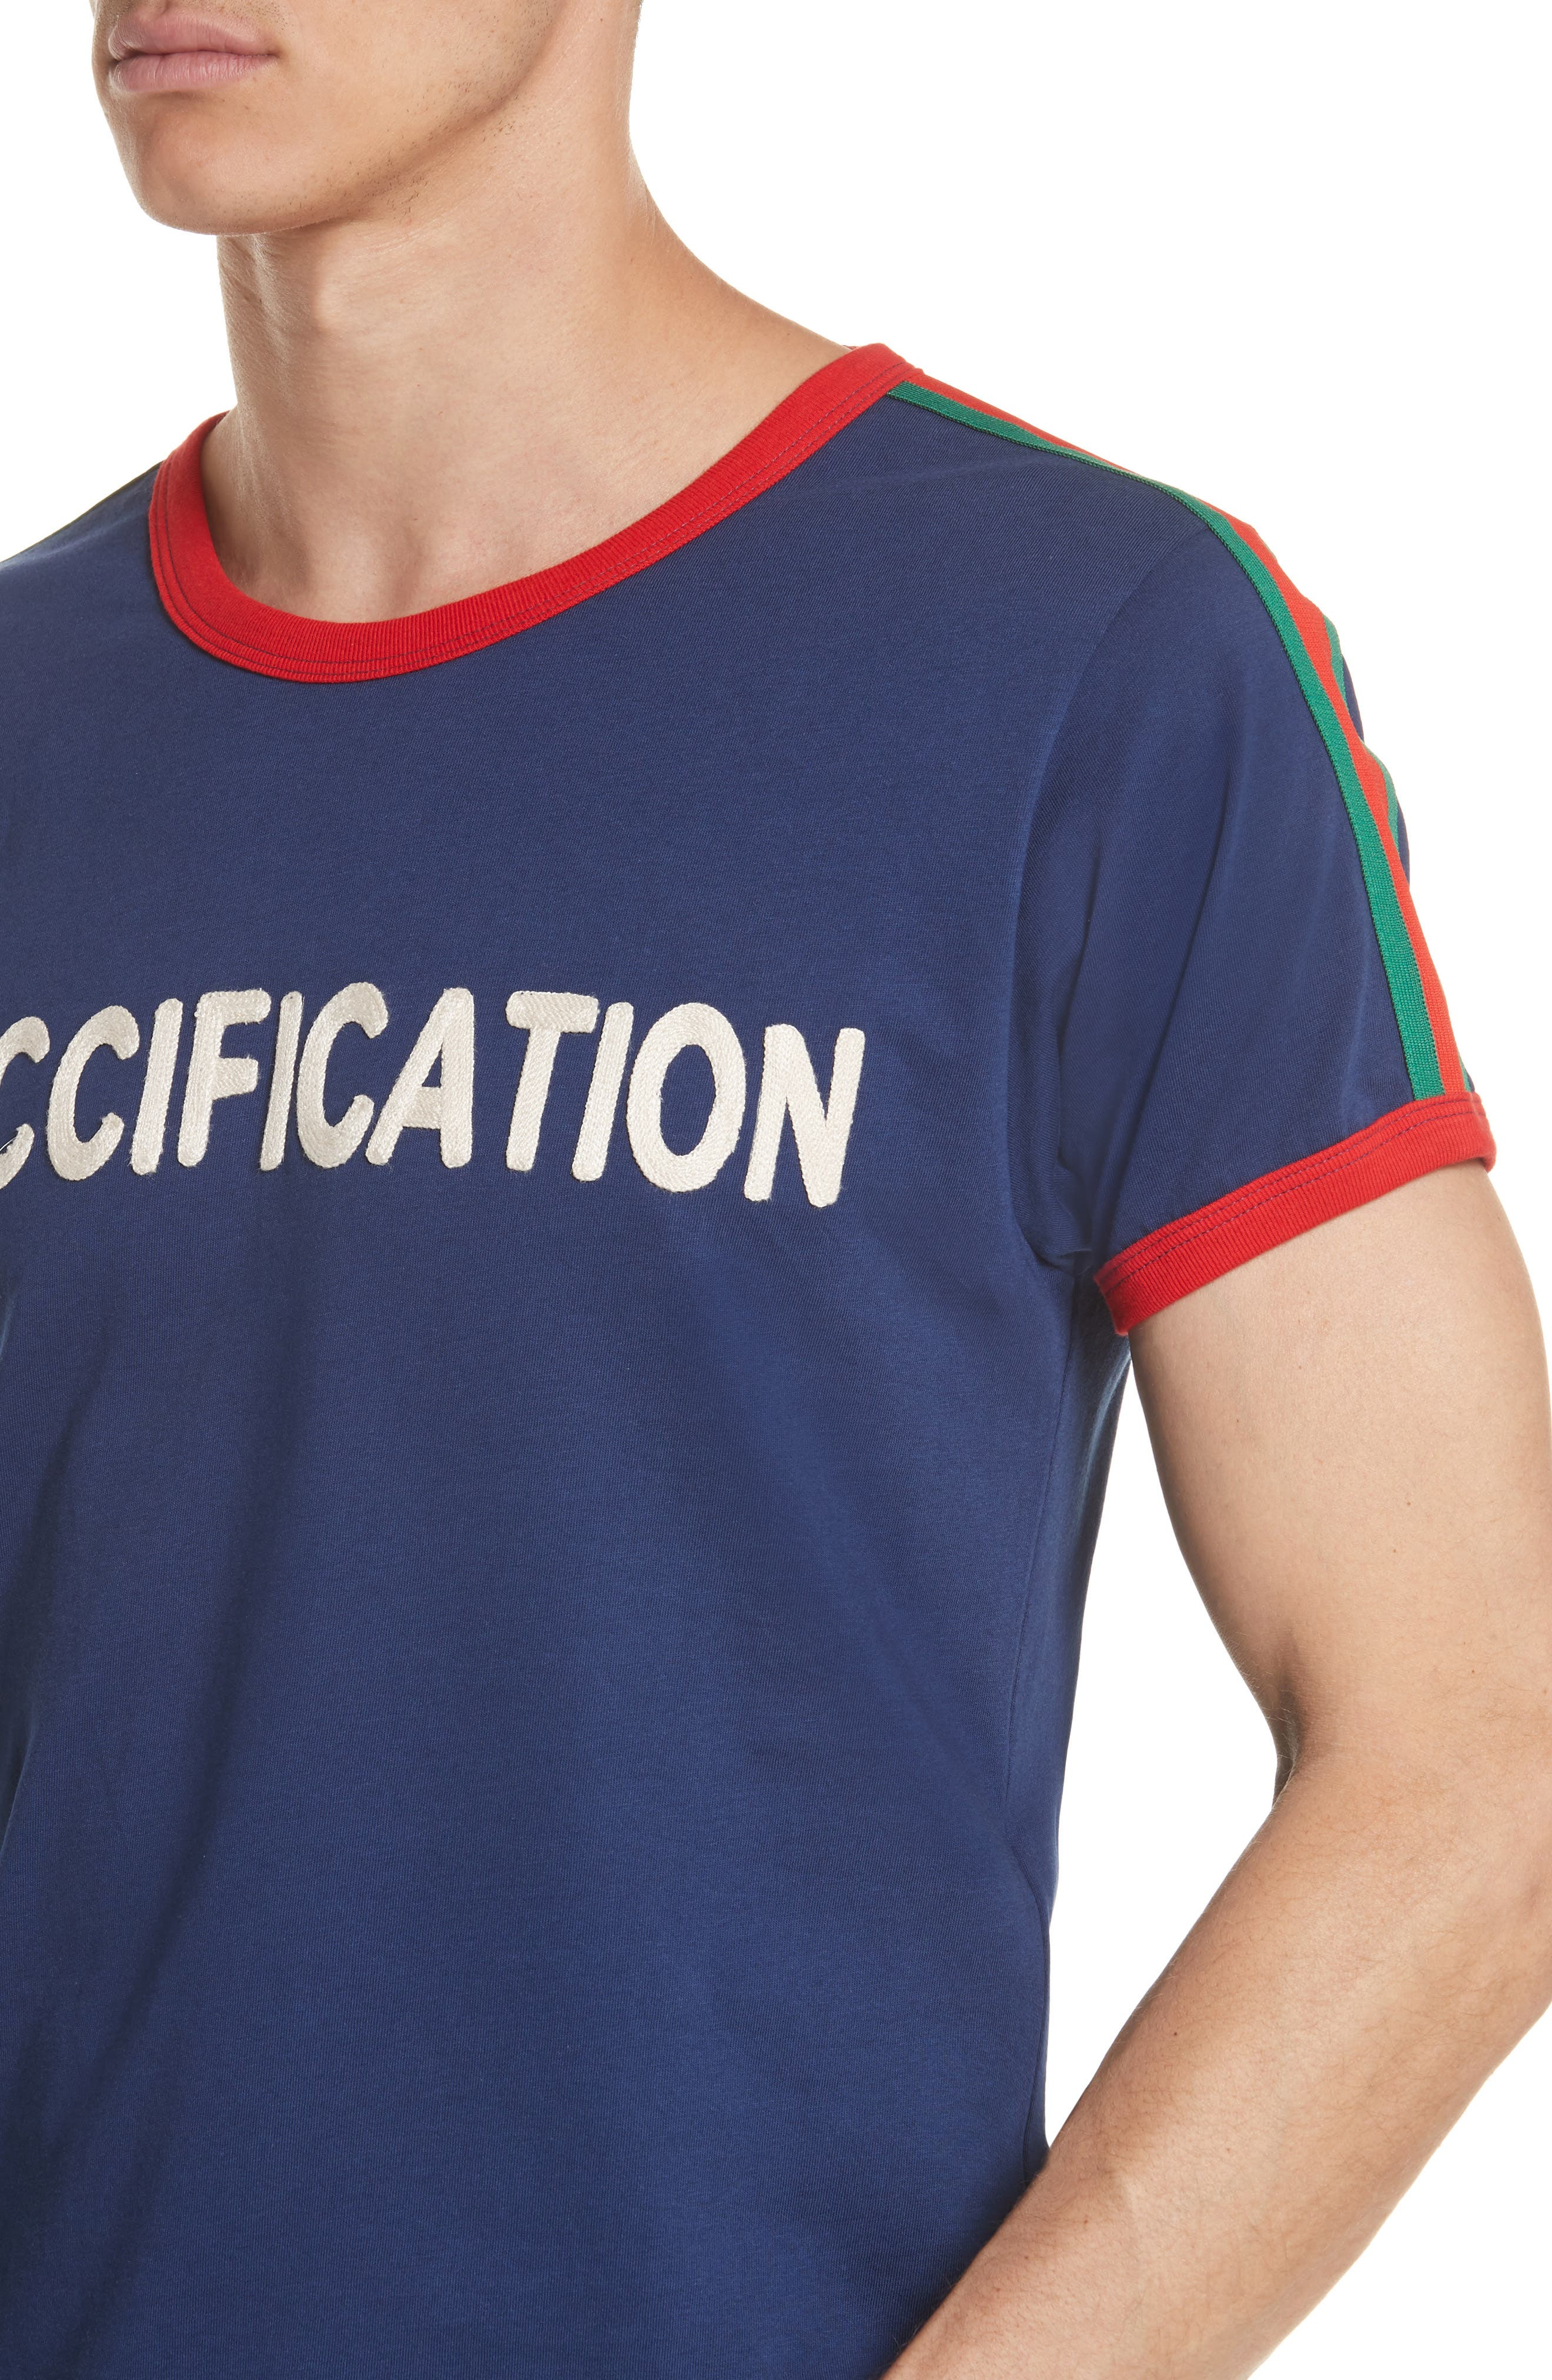 Guccification T-Shirt,                             Alternate thumbnail 4, color,                             4455 Navy